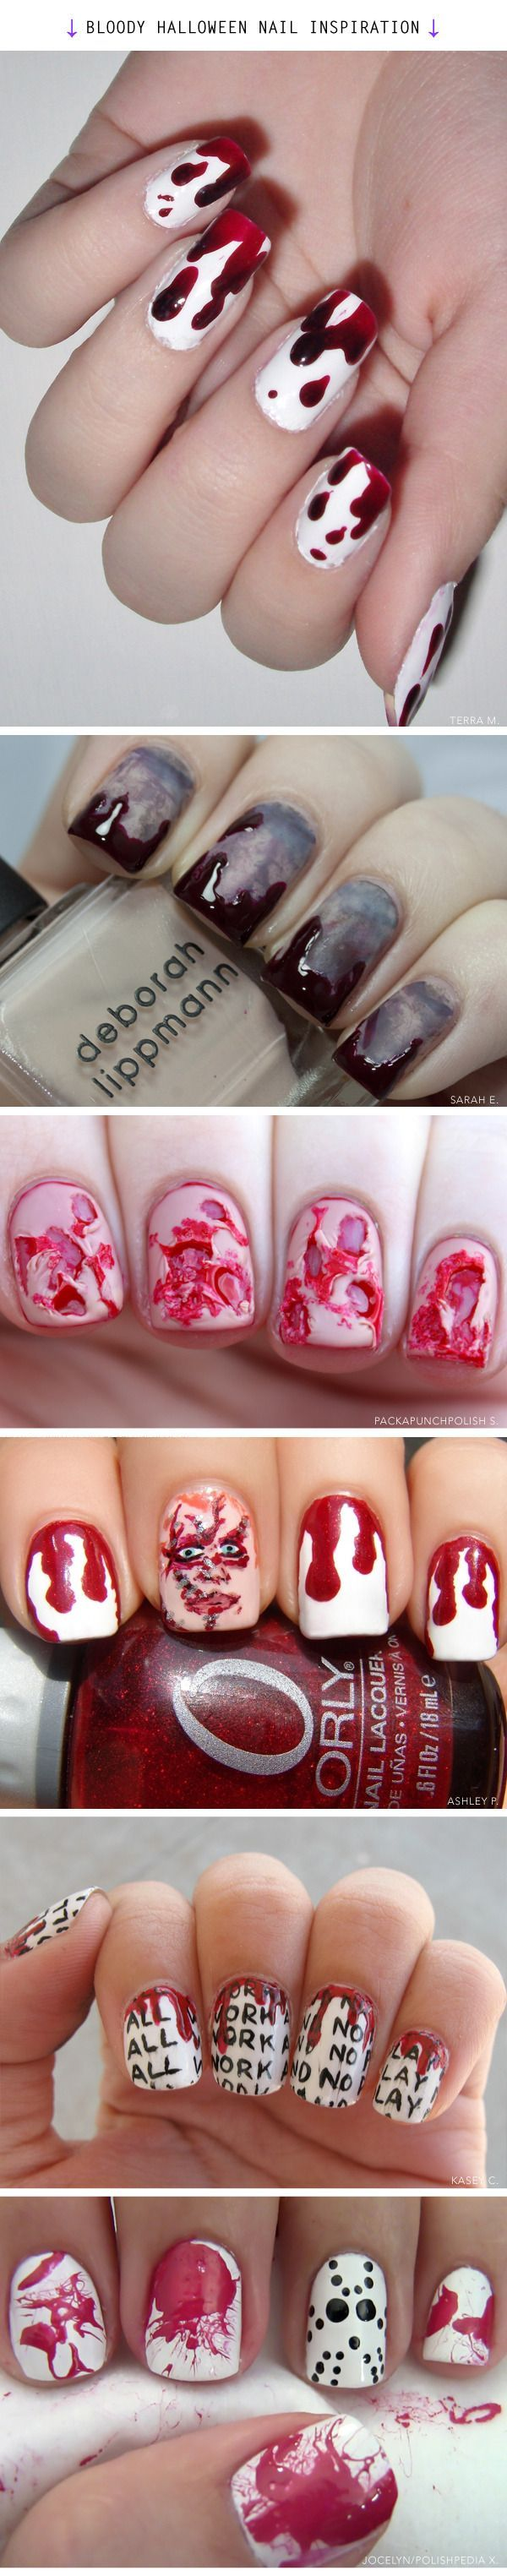 nails -                                                      What a Vampire's Nails Really Look Like